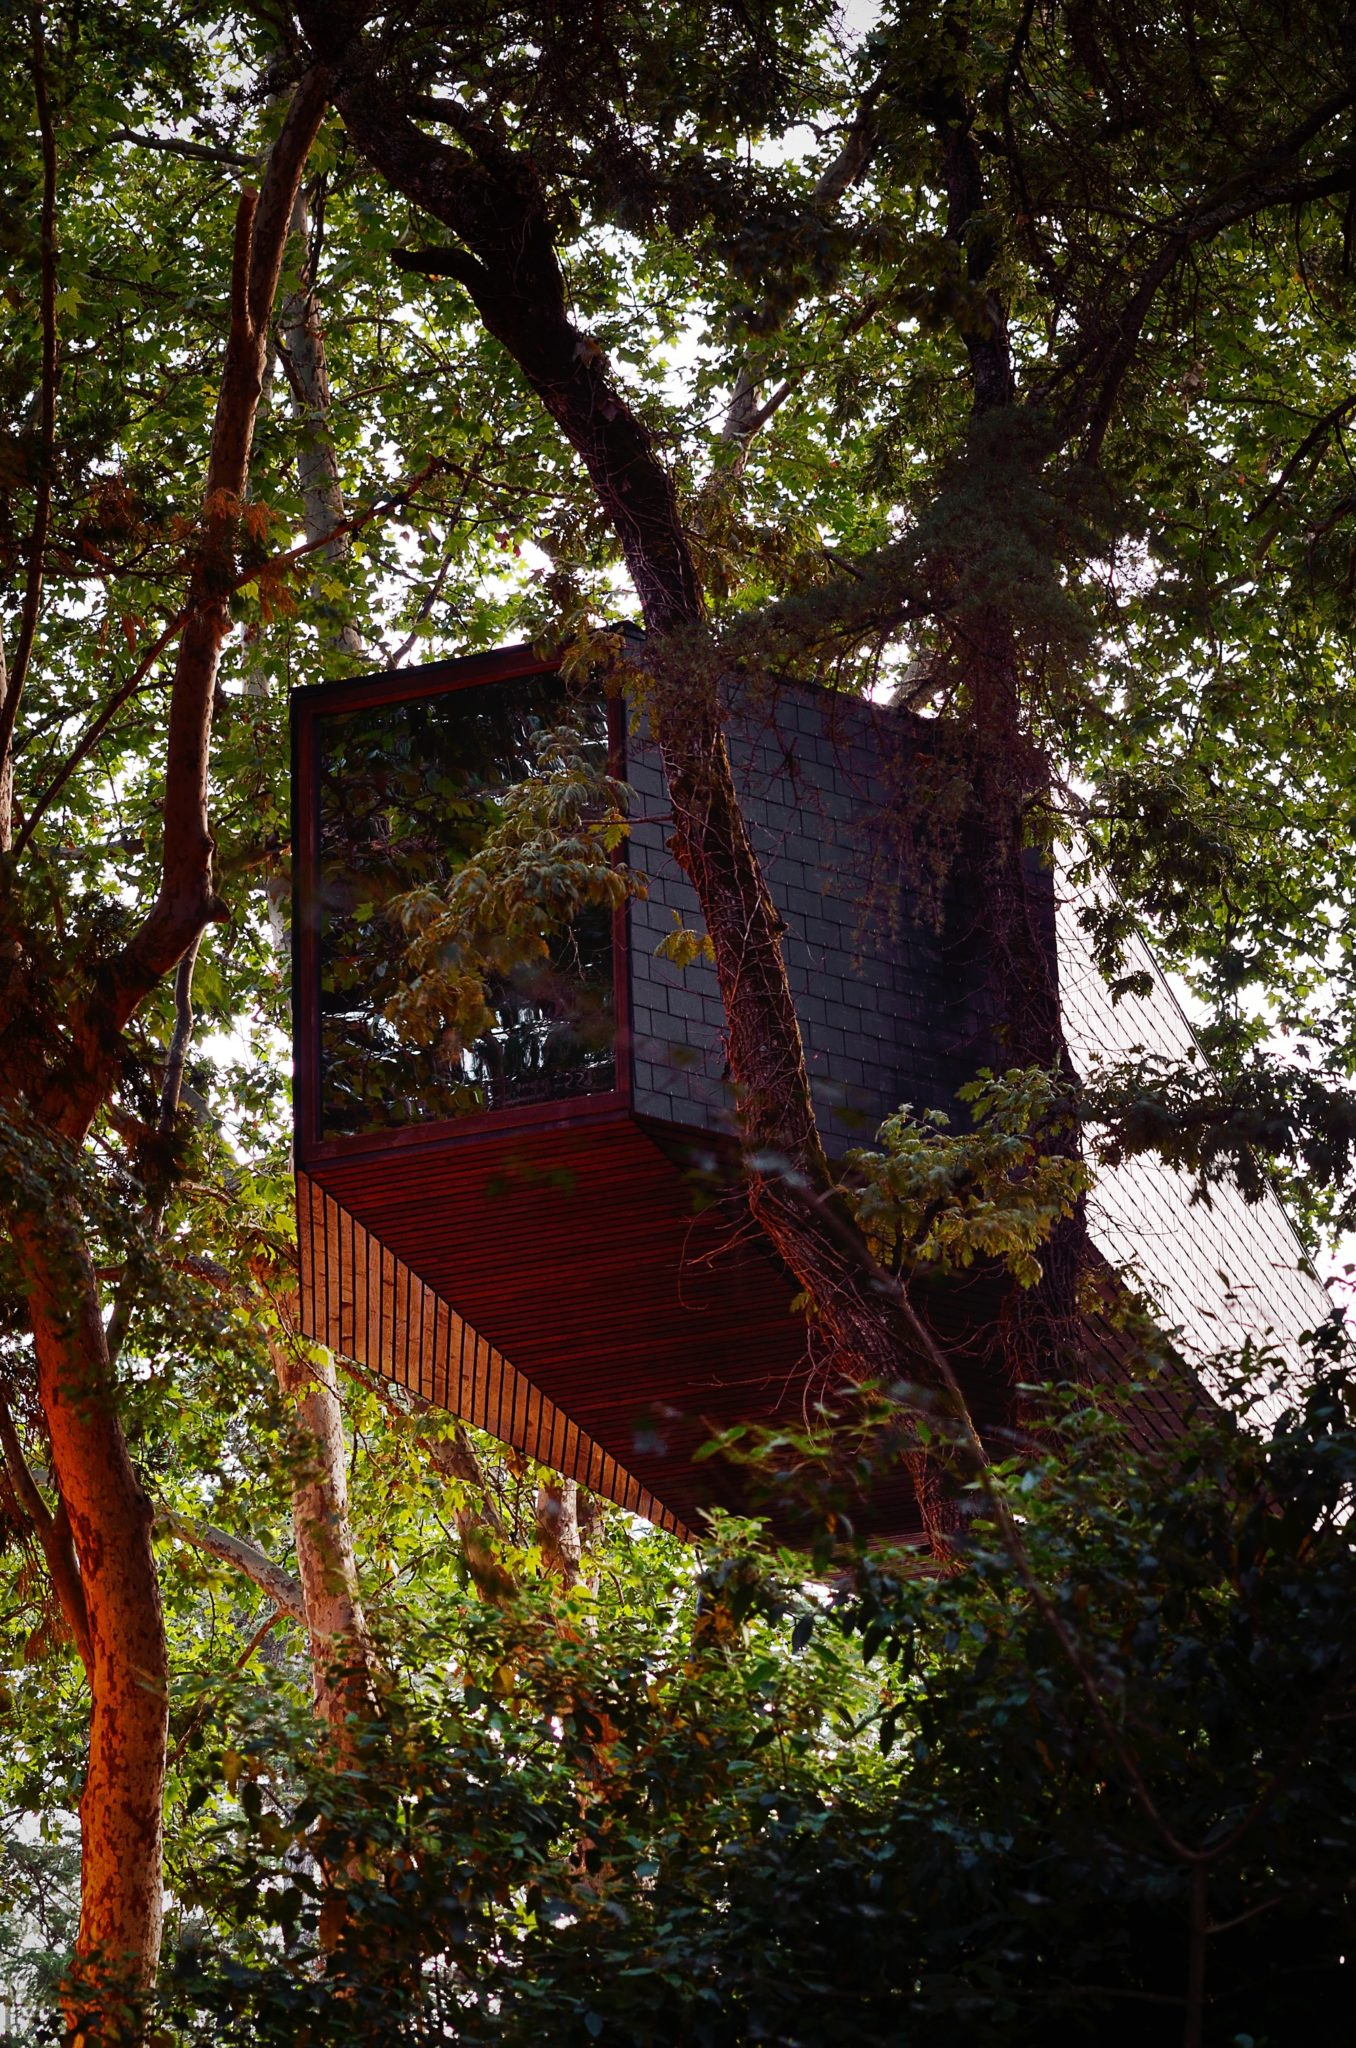 A wooden treehouse with a geometric design